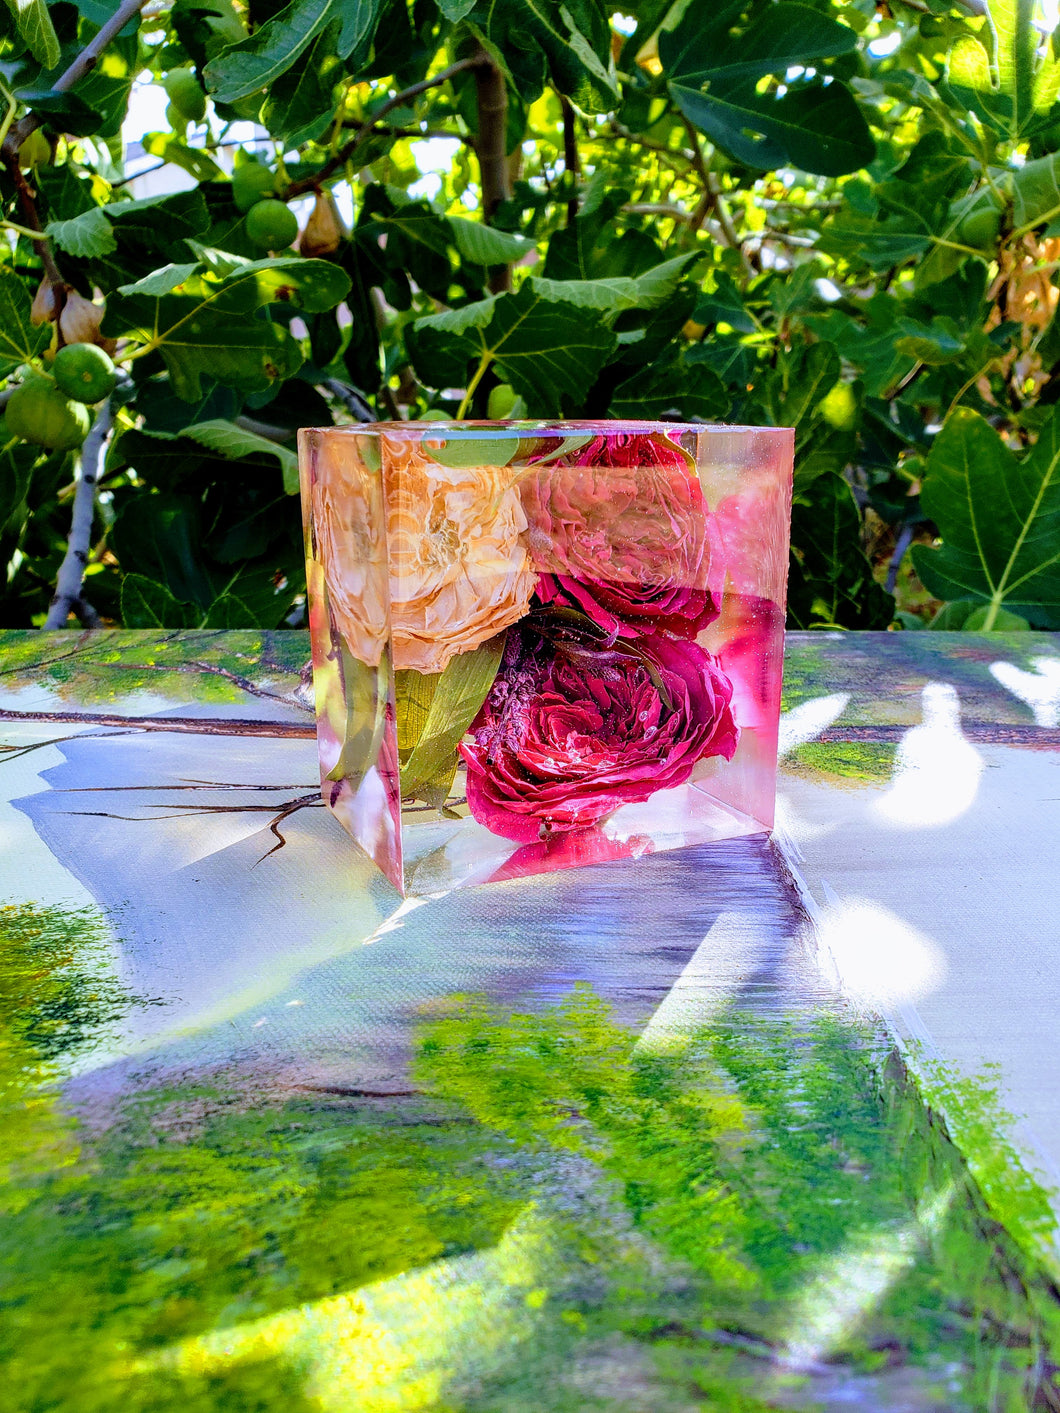 Preserving wedding Flowers in Large Resin Cube like glass Paperweight Keepsake Sweet romantic memories of your wedding, anniversary,funeral.